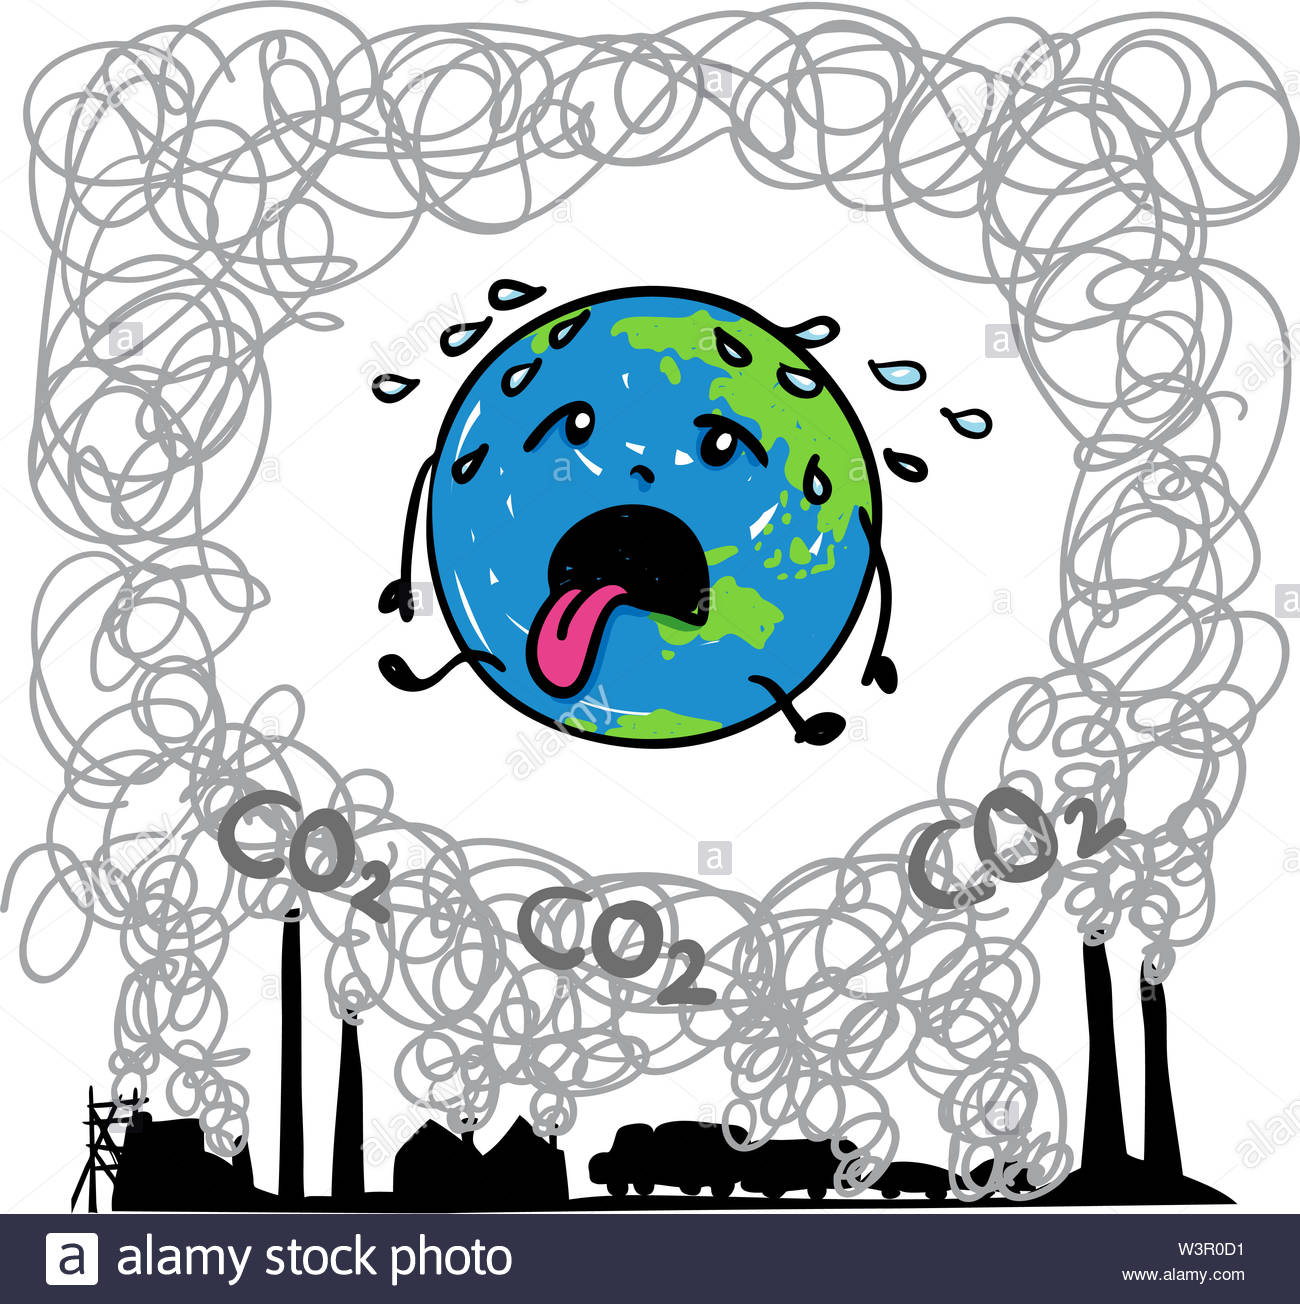 Earth globe suffering under global warming melting away in midst of carbon dioxide. Suitable for environmentalism, climate change, ecology - Stock Image